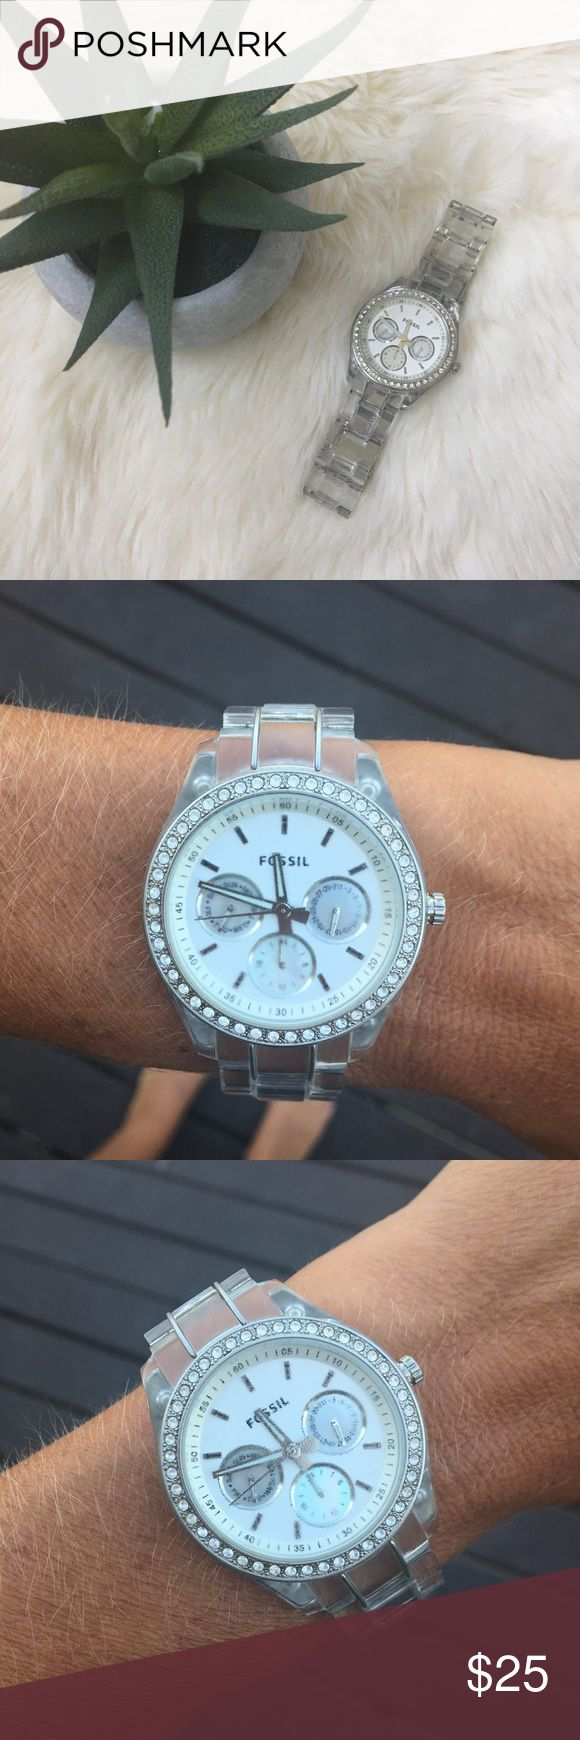 Gorgeous Fossil watch Beautiful detailed fossil watch with plated faux diamond surround. Face features month, day, and 24 hour clock. Band features clear wrist plates with a silver clasp in back. Excellent condition! Fossil Accessories Watches